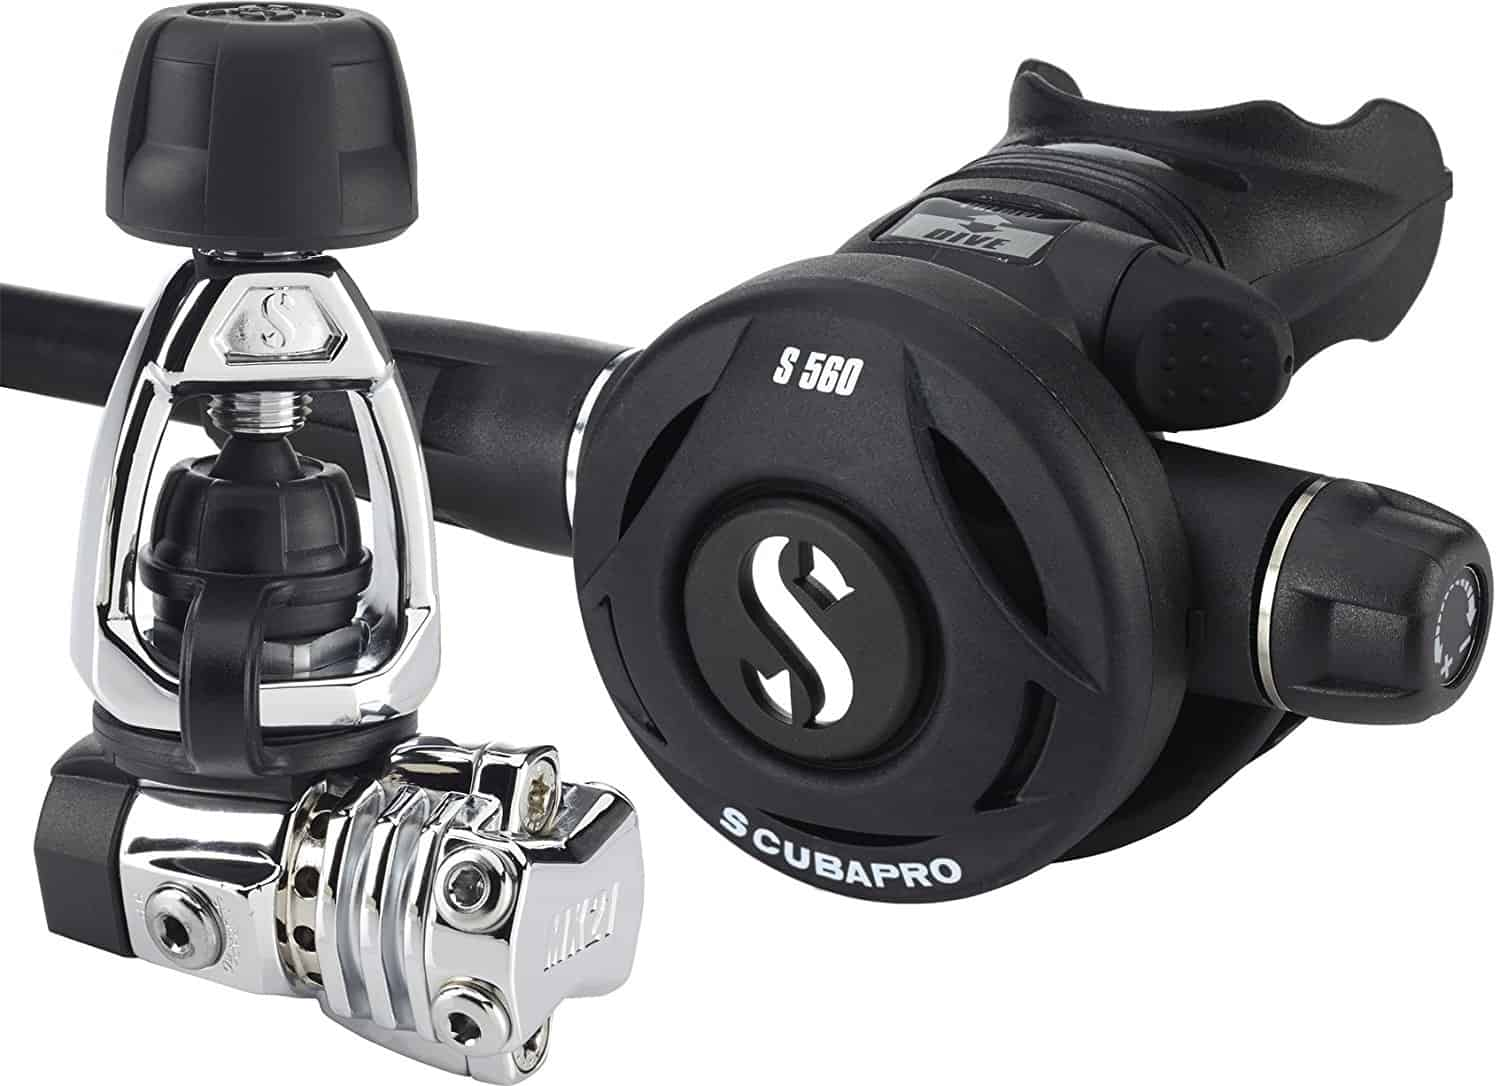 Scubapro MK21-S560 Regulator